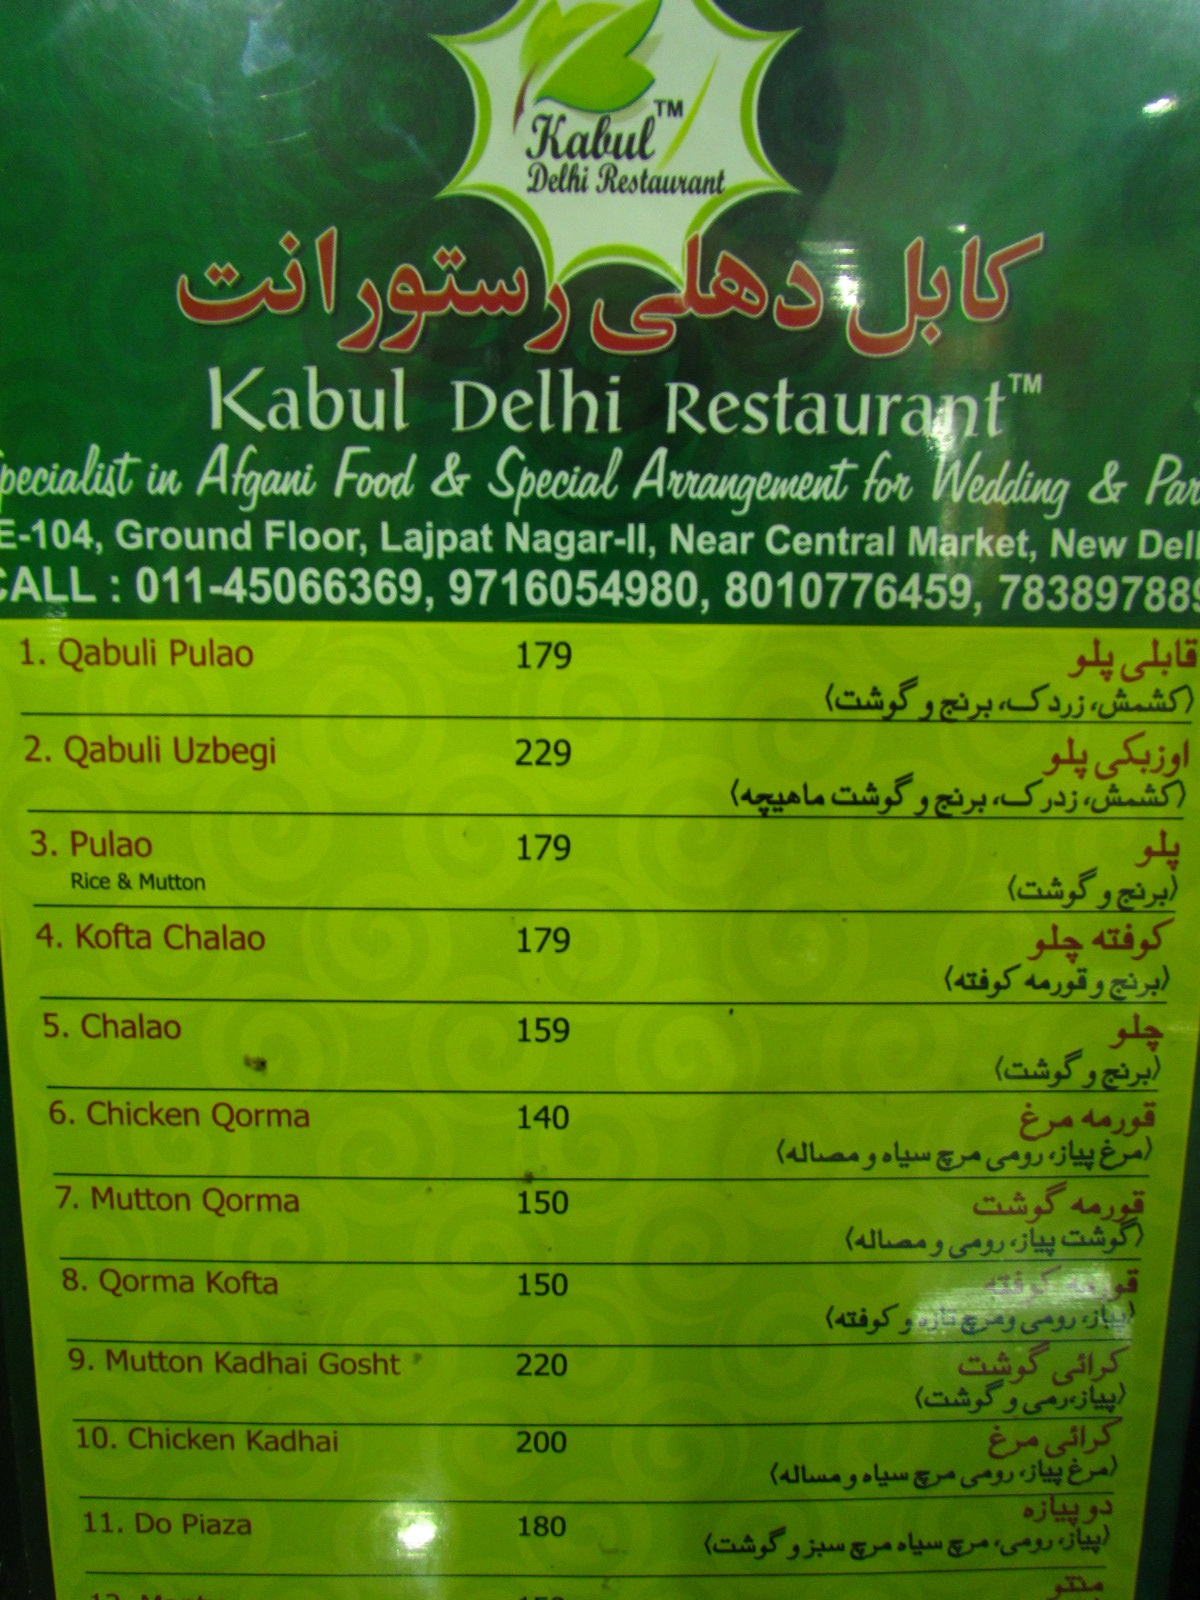 Kabul delhi restaurant e104 ground floor lajpatnagar 2 for Floor 6 reloaded menu